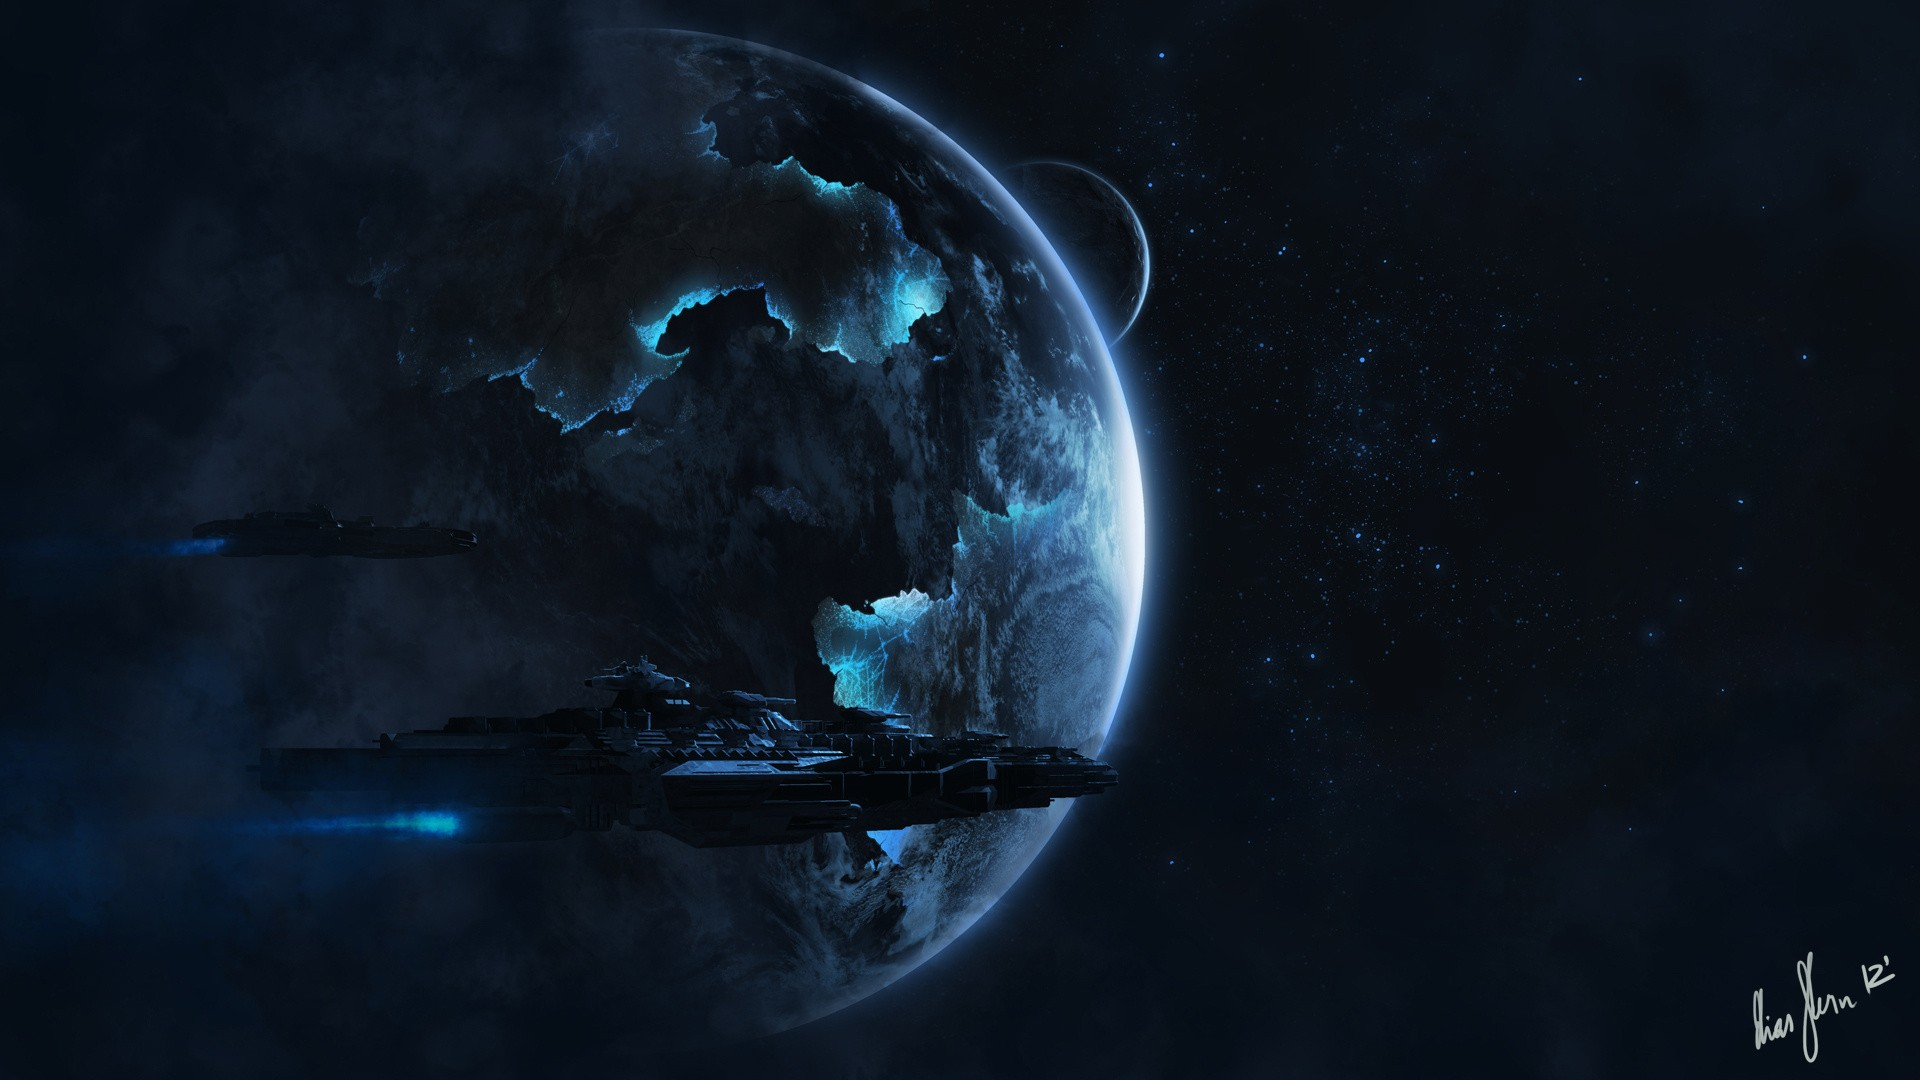 alien spaceship computer wallpapers desktop backgrounds